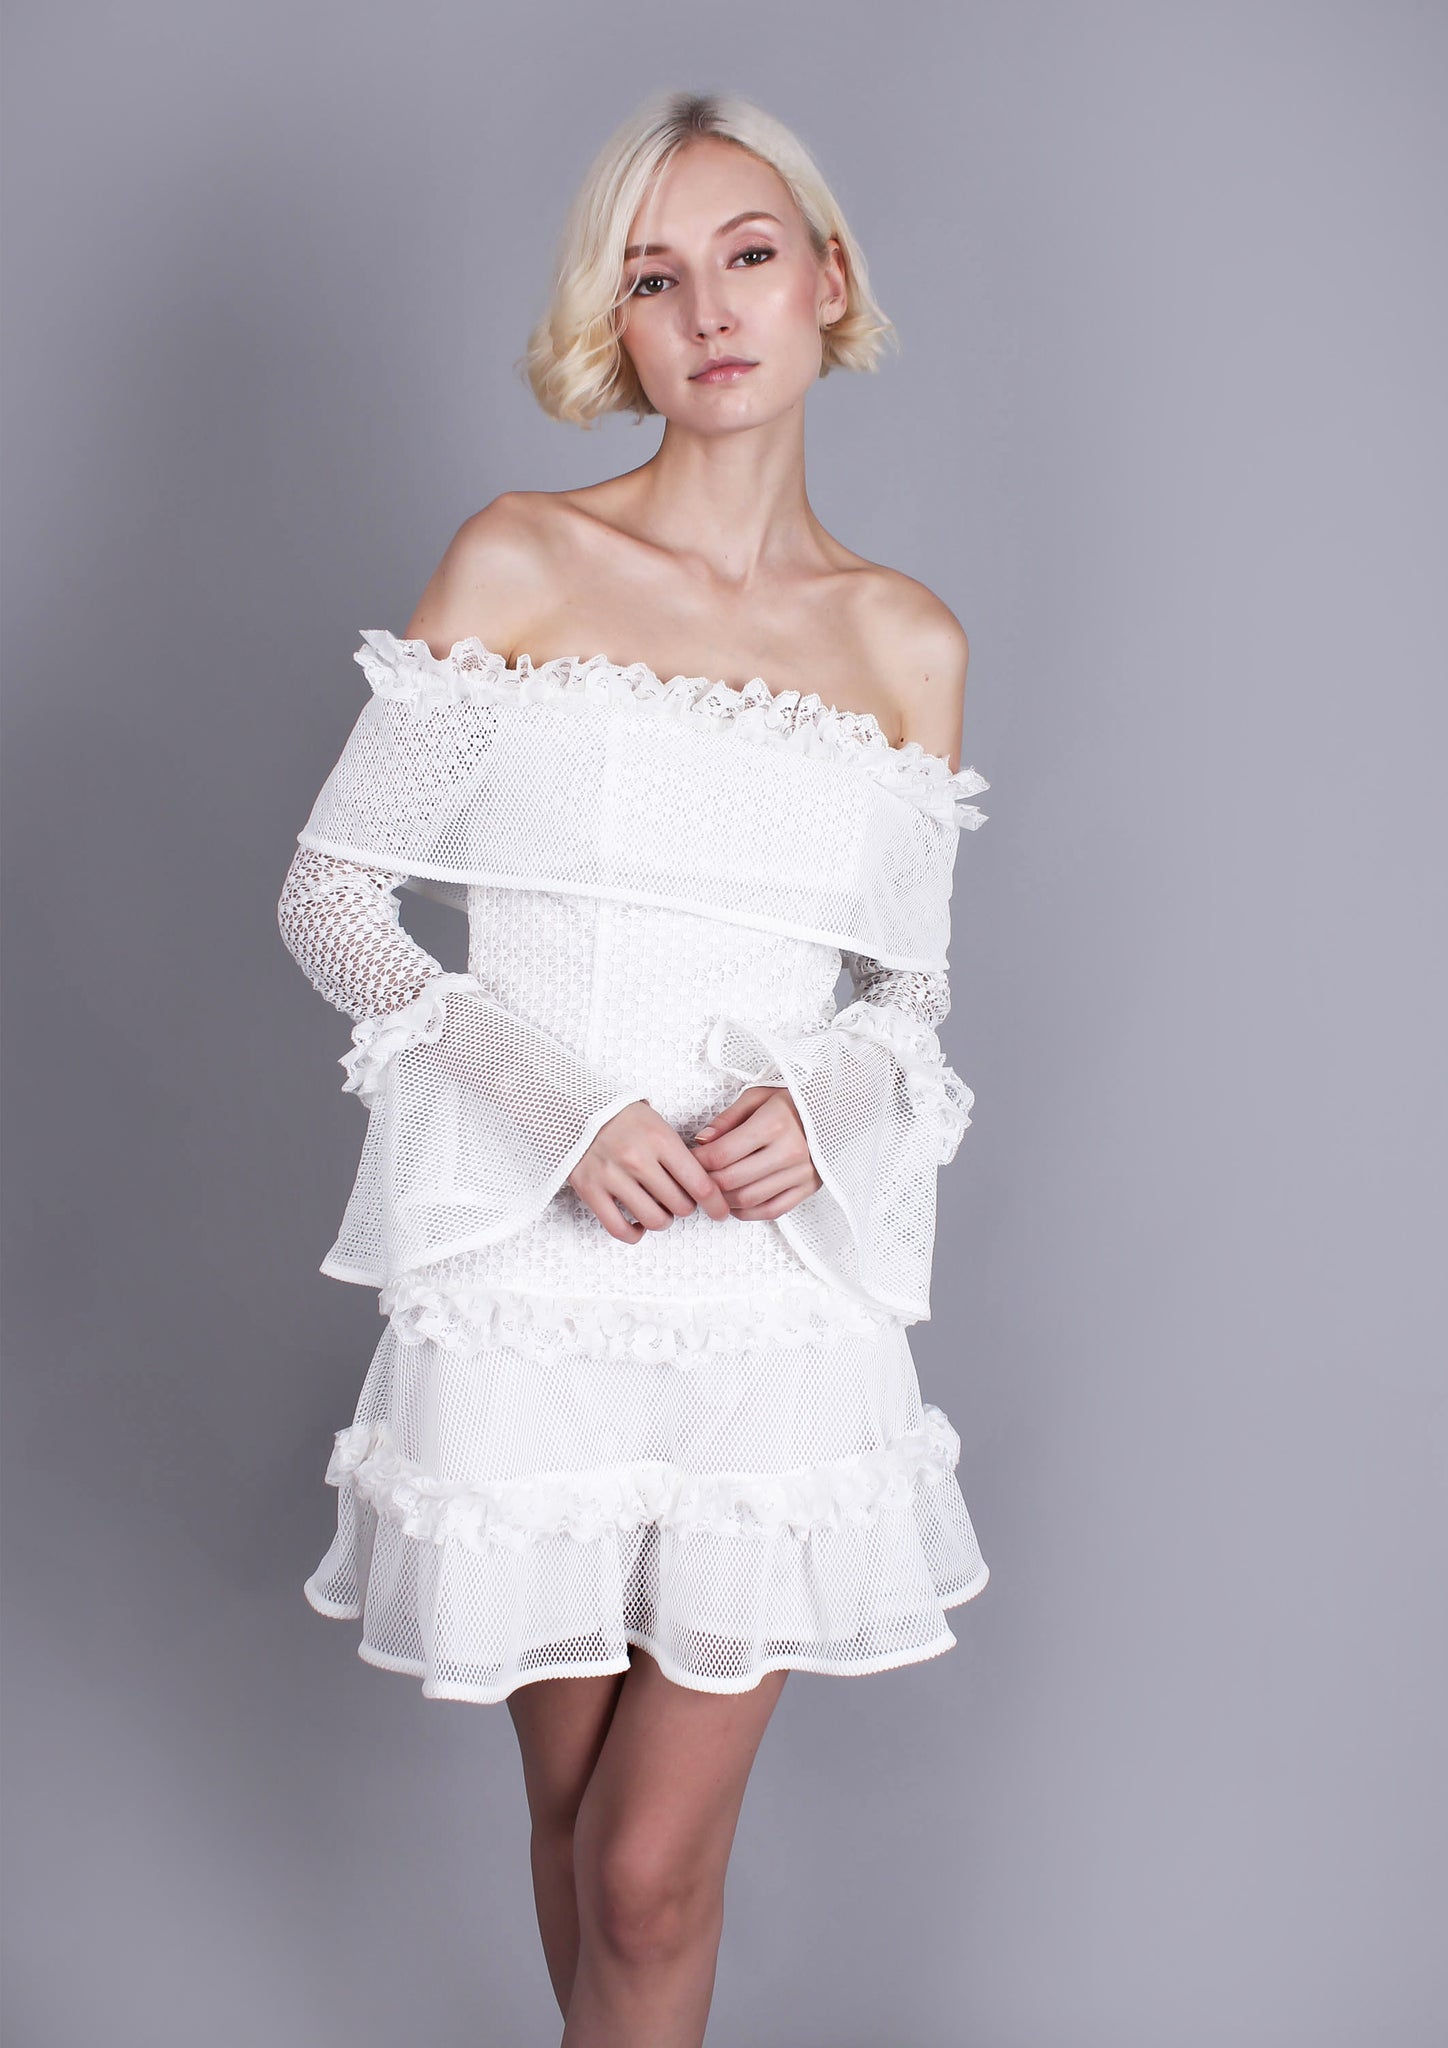 The Mood Swing Dress (White)